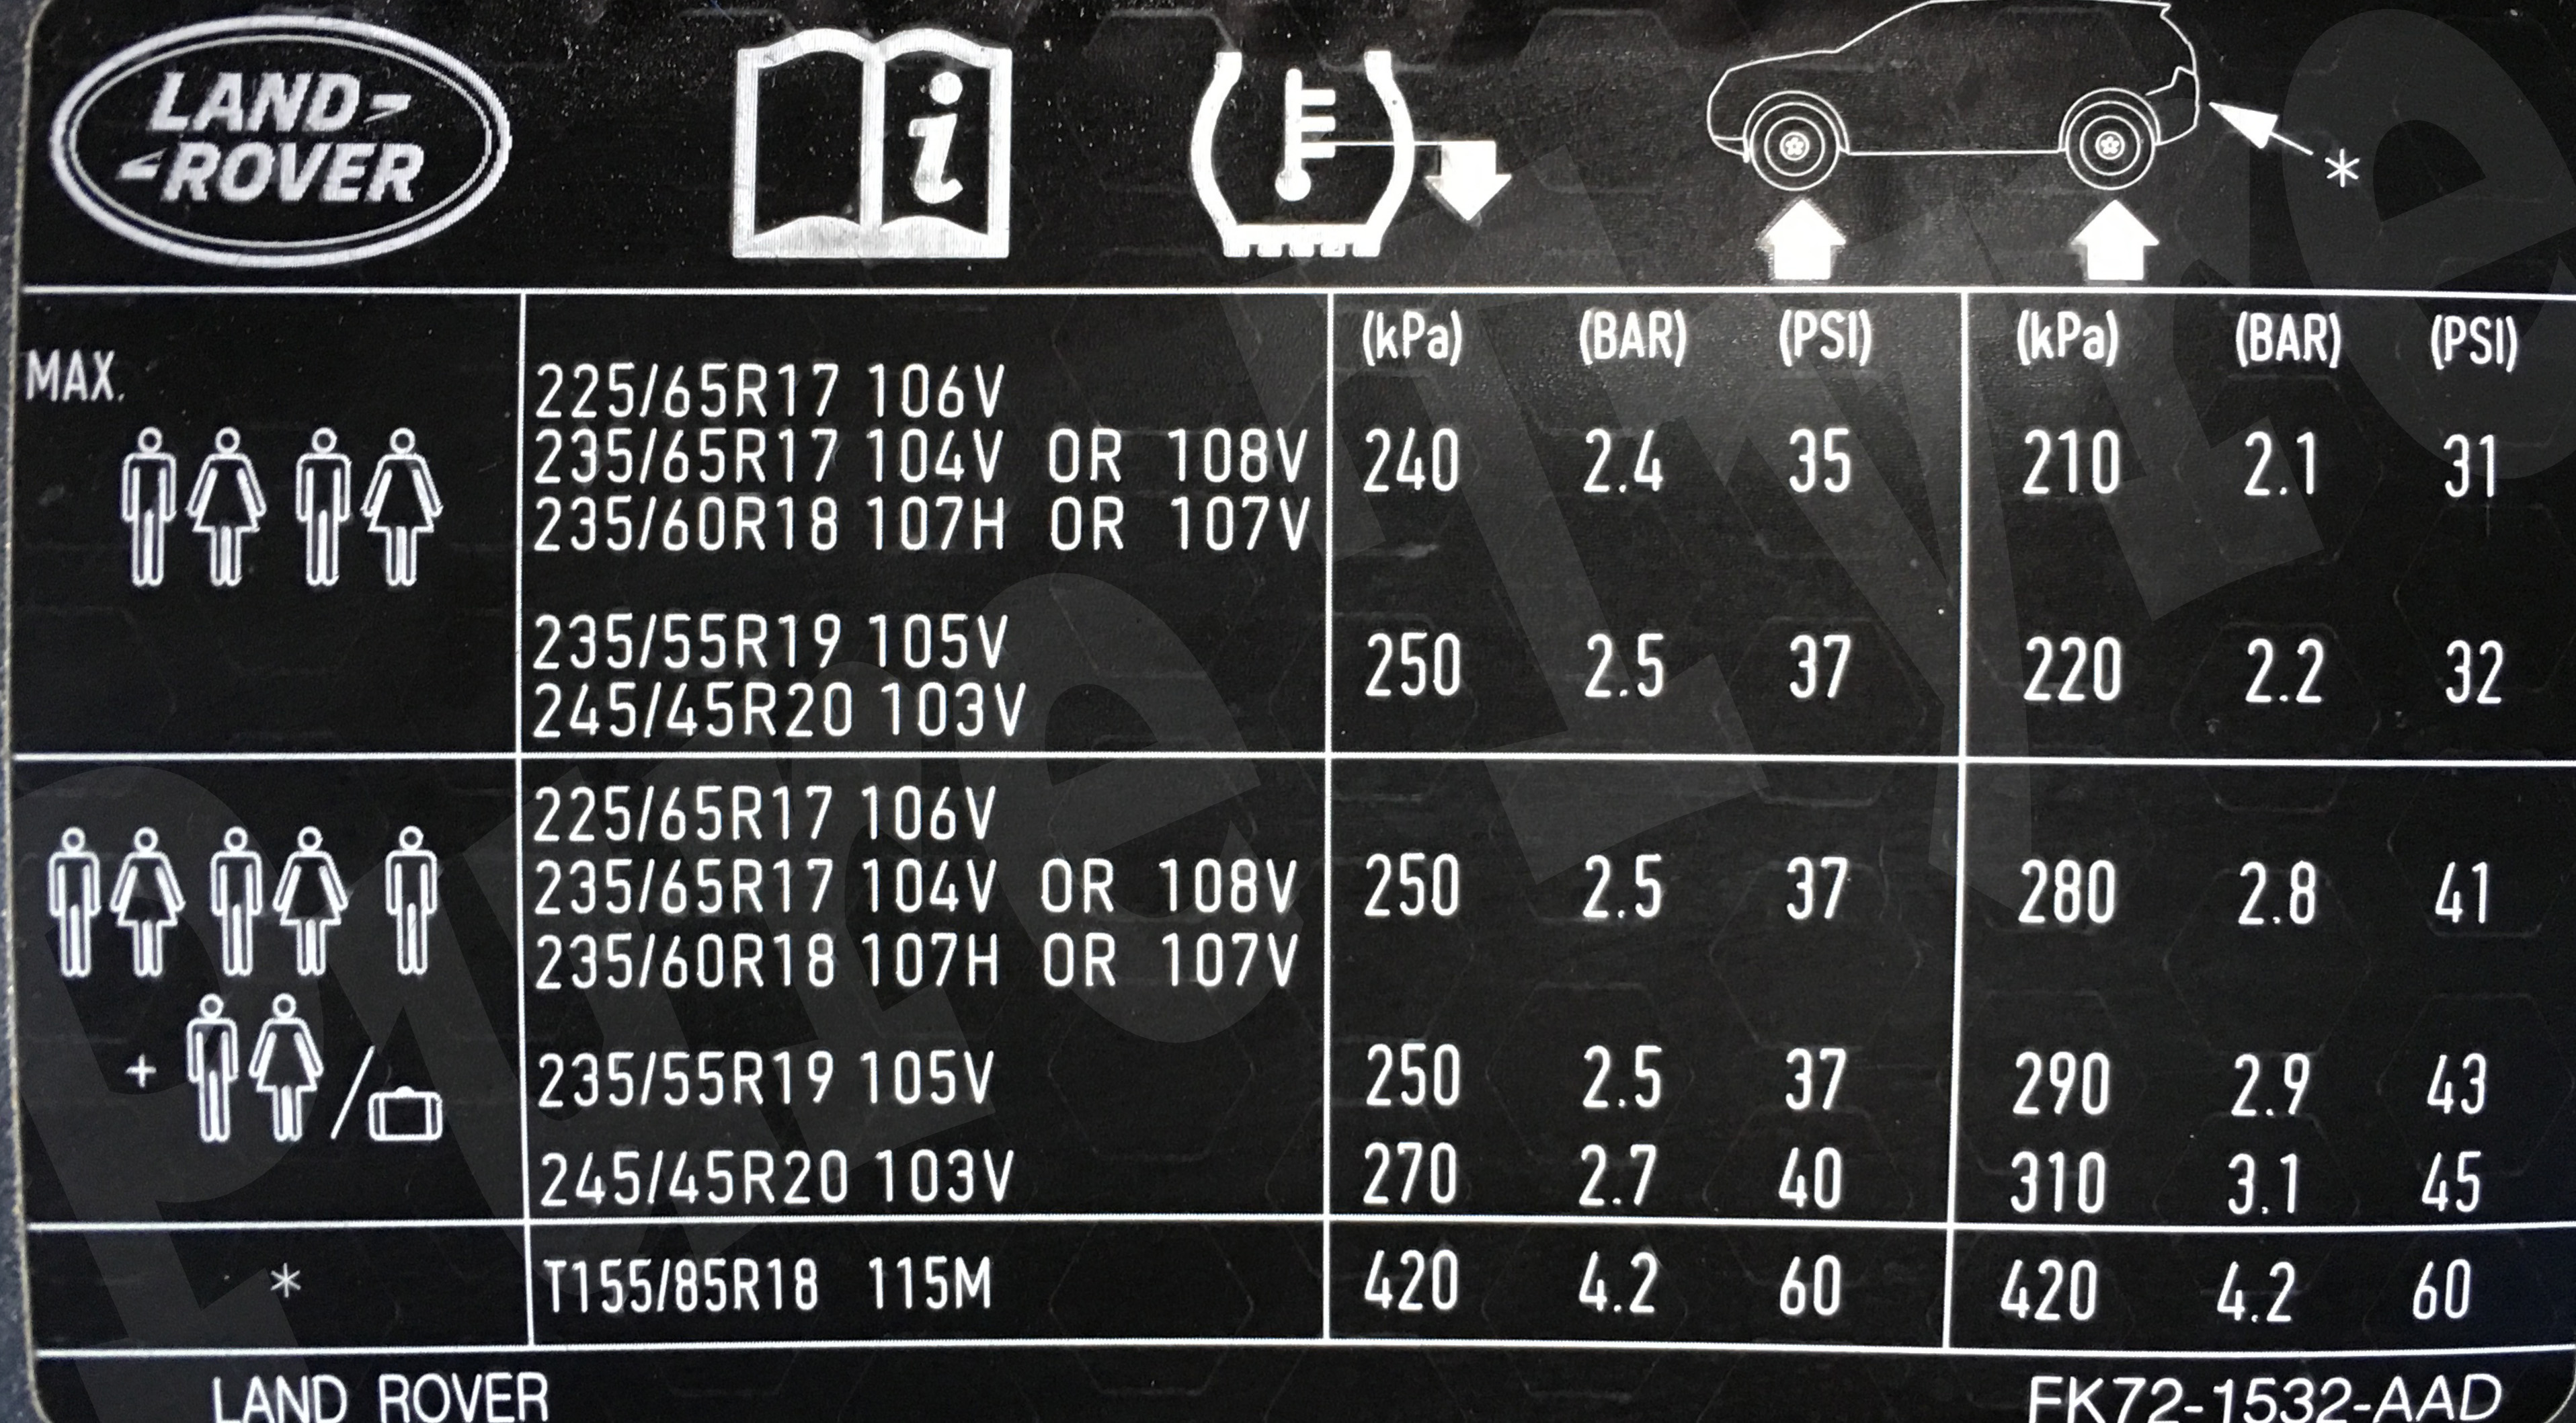 Jaguar Xf Tyre Pressure Placard together with Ouchigari1 moreover Nigerias Potential Improve Its Oil Industry moreover Ford Fiesta St 2013 On Tyre Pressure Placard besides Symbol Jimi Hendrix 19788. on pressure chart